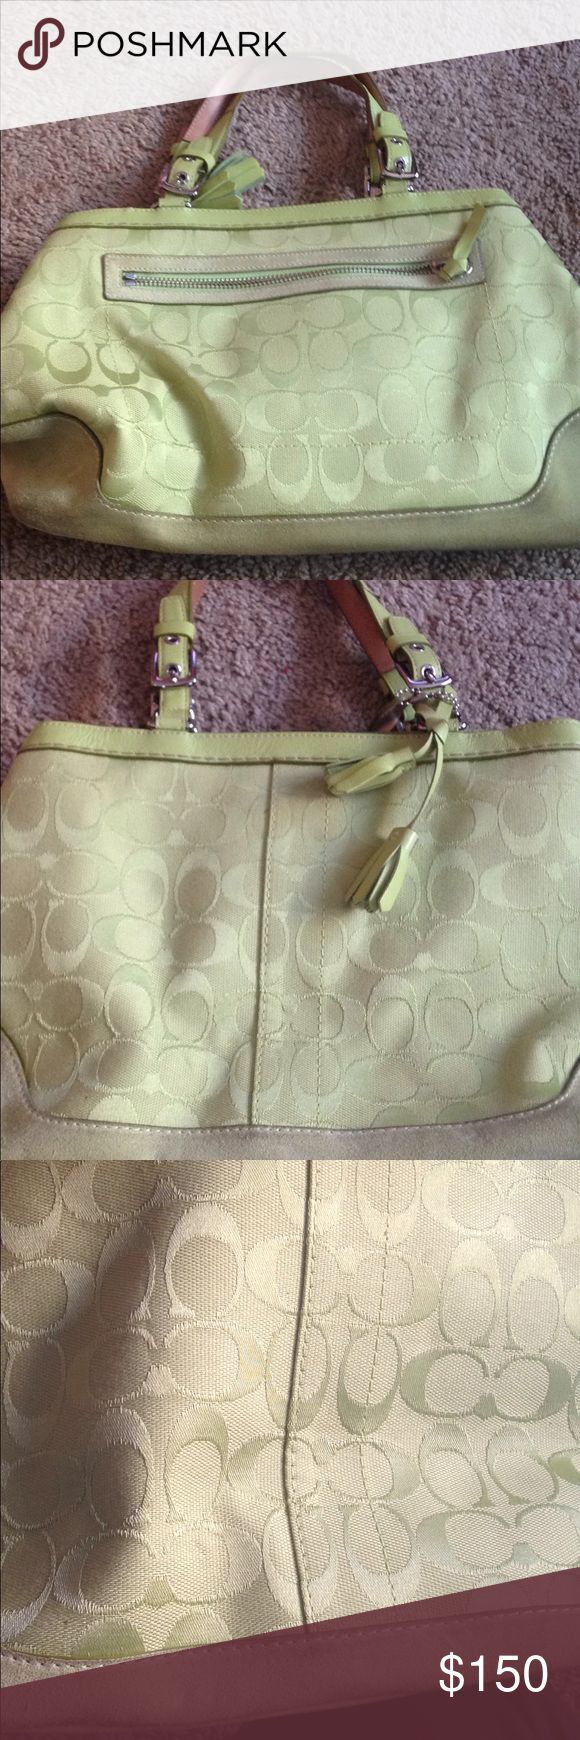 Pale green medium size coach purse Pale green coach purse. Large c design. Zip closure. Outside zip pocket. 3 inside pockets. Overall great condition. Slight wear on suede bottom as pictured.  Duster bag included. Coach Bags Hobos